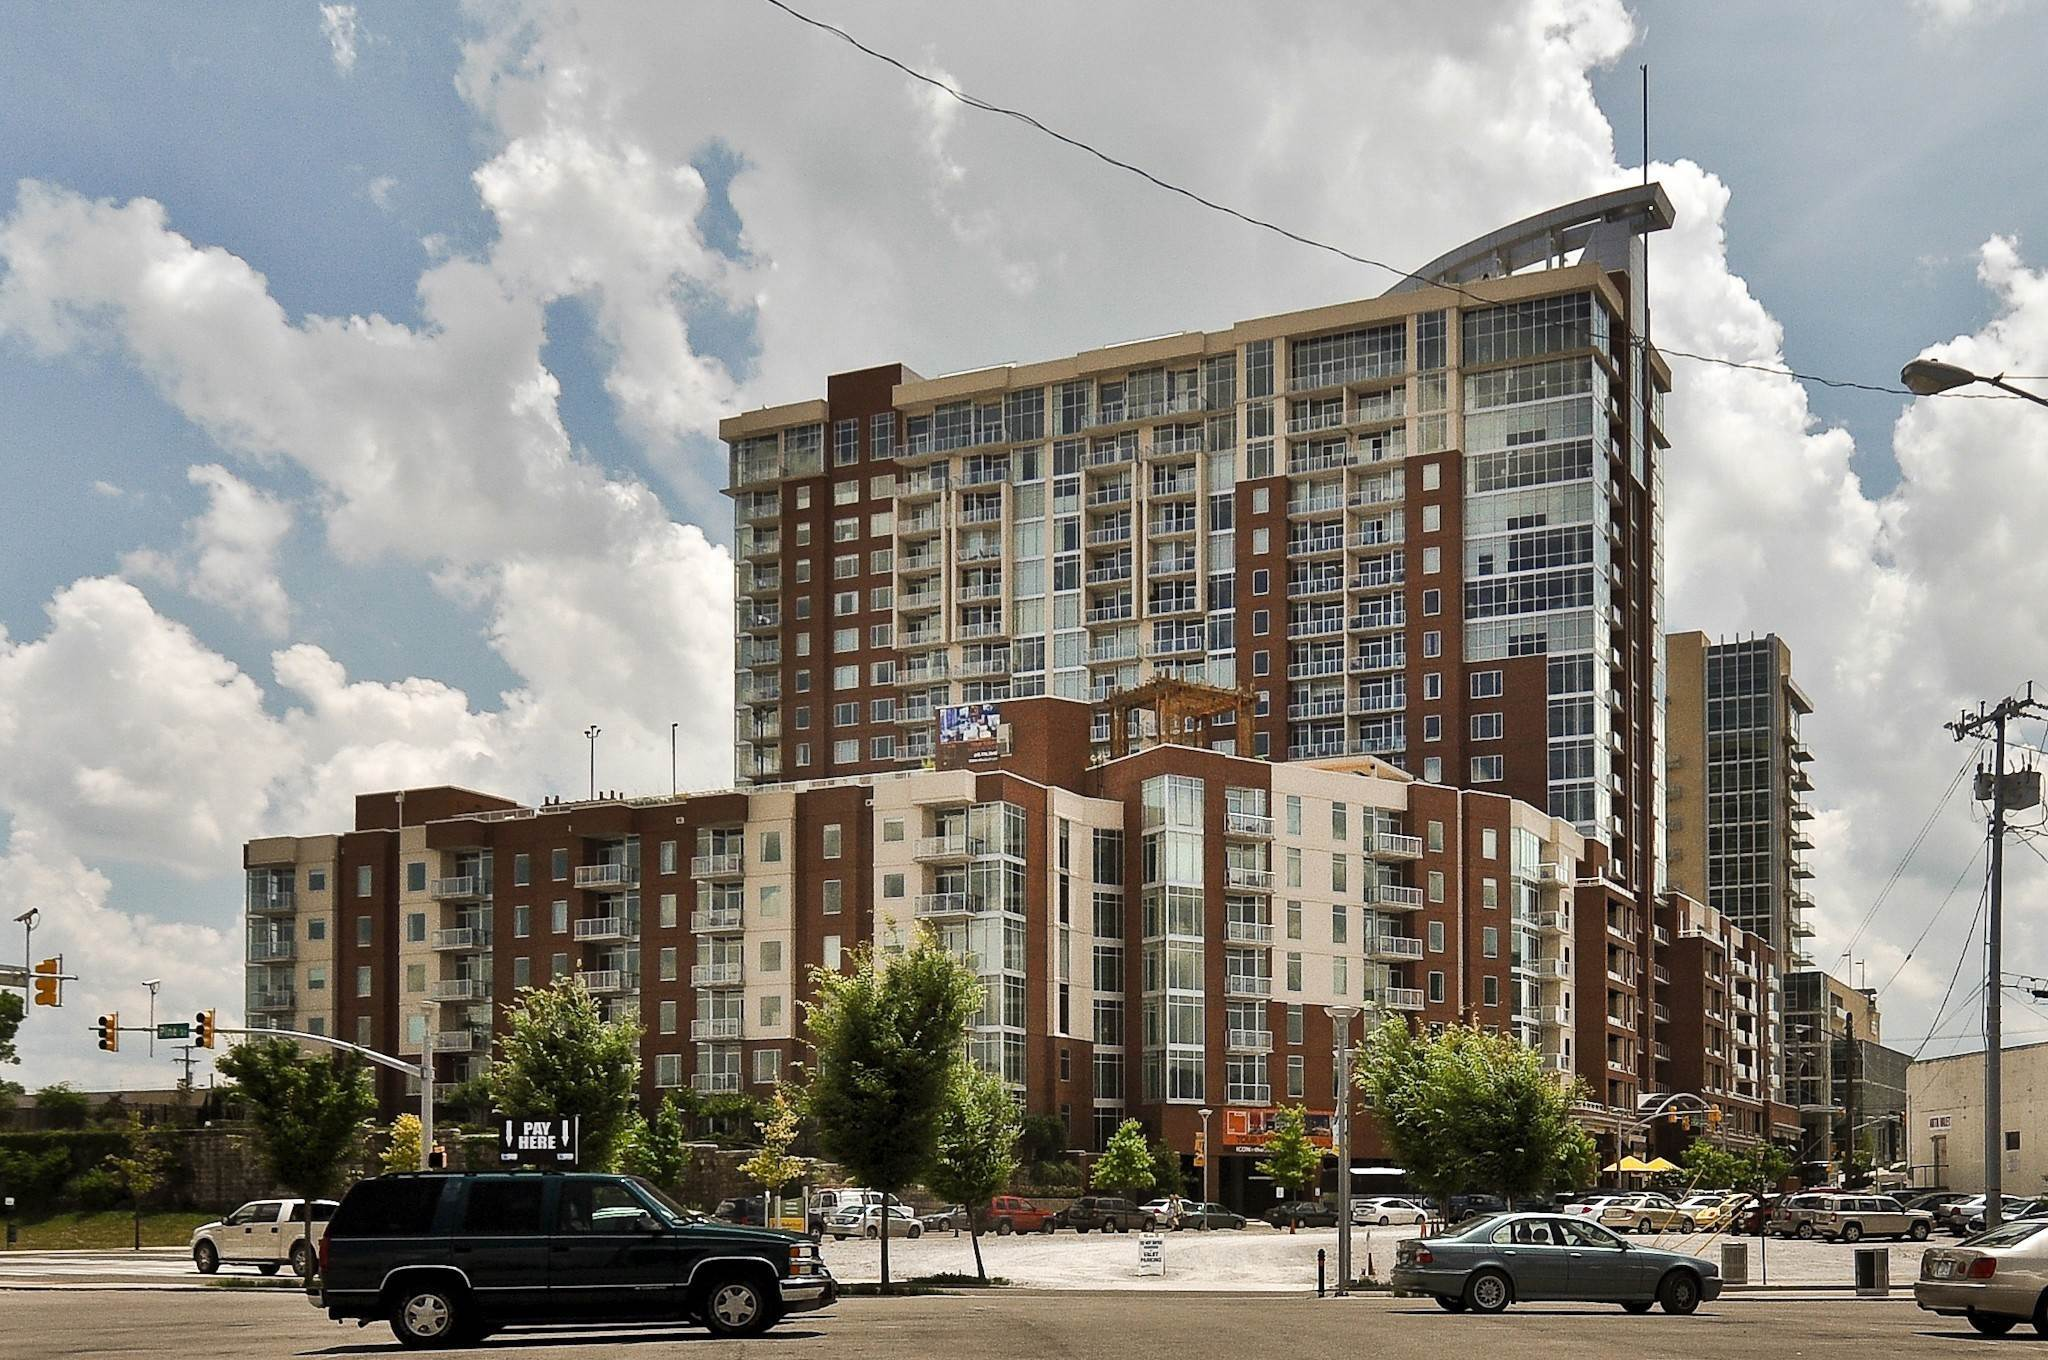 High Rise for Sale at 600 12th Ave, S Nashville, Tennessee 37203 United States